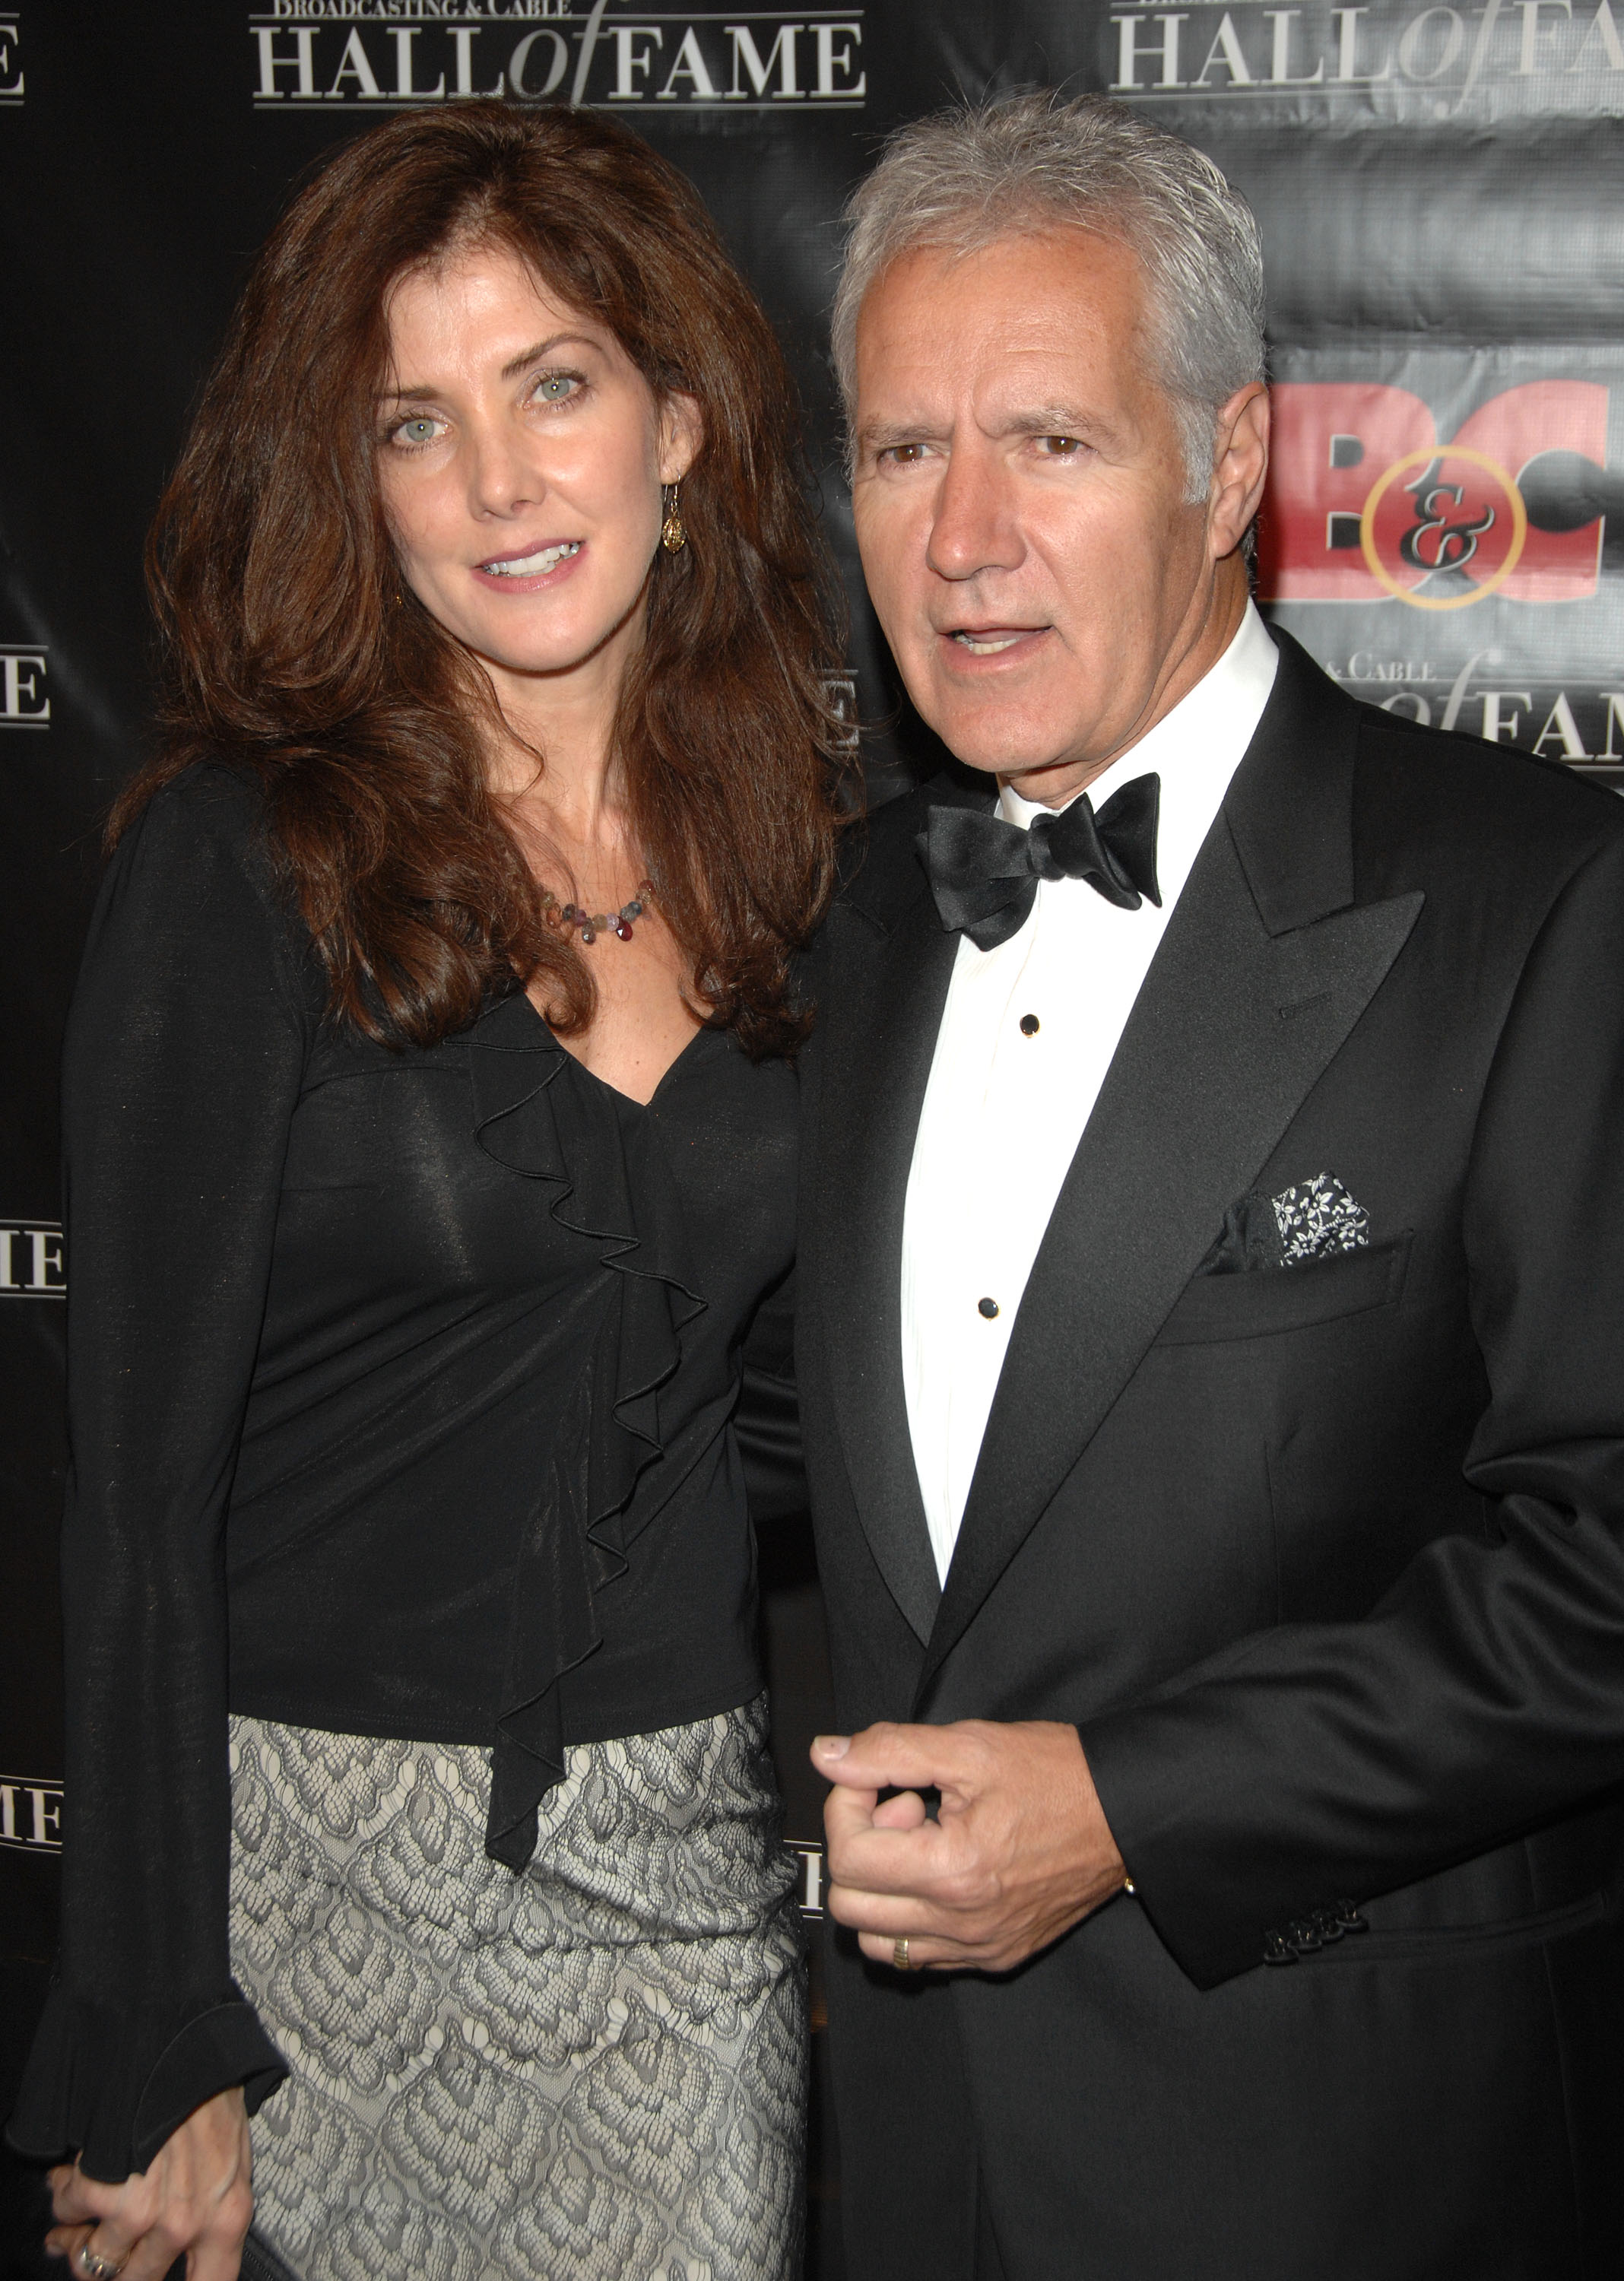 Alex Trebek and his wife, Jean Trebek, arrive at the 17th annual Broadcasting and Cable Hall of Fame awards in New York.